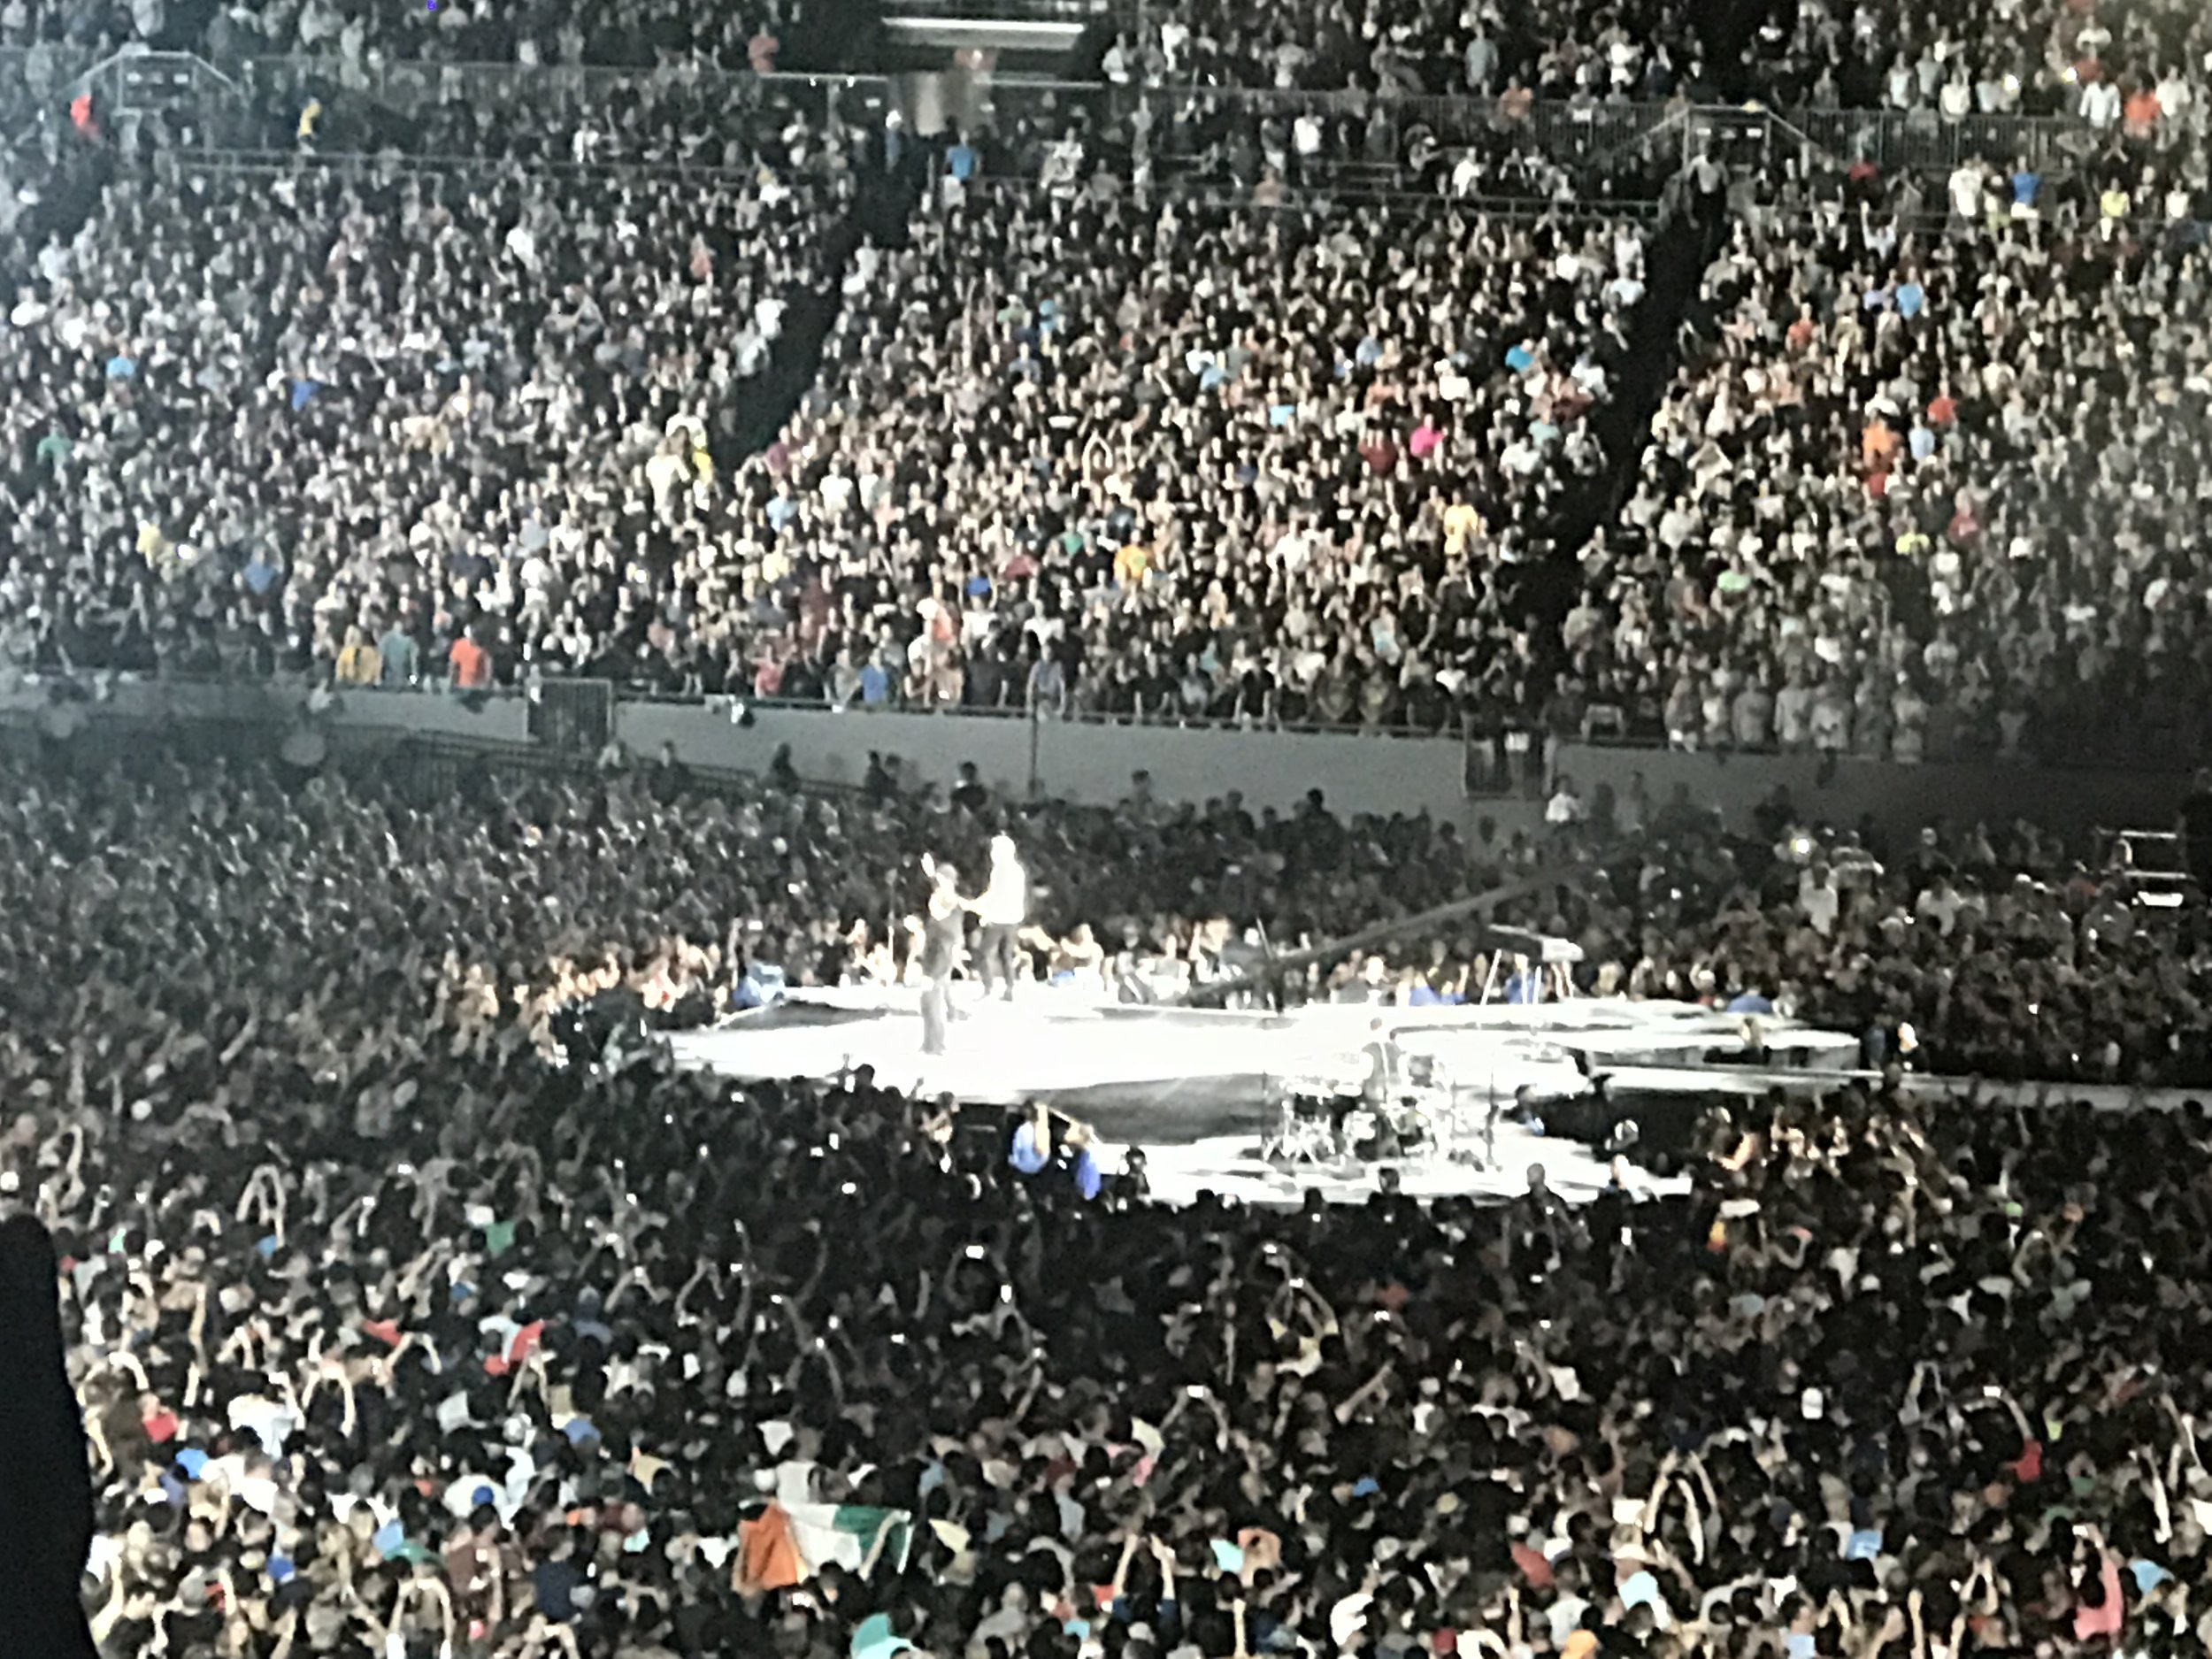 U2 in Tampa | June 14, 2017